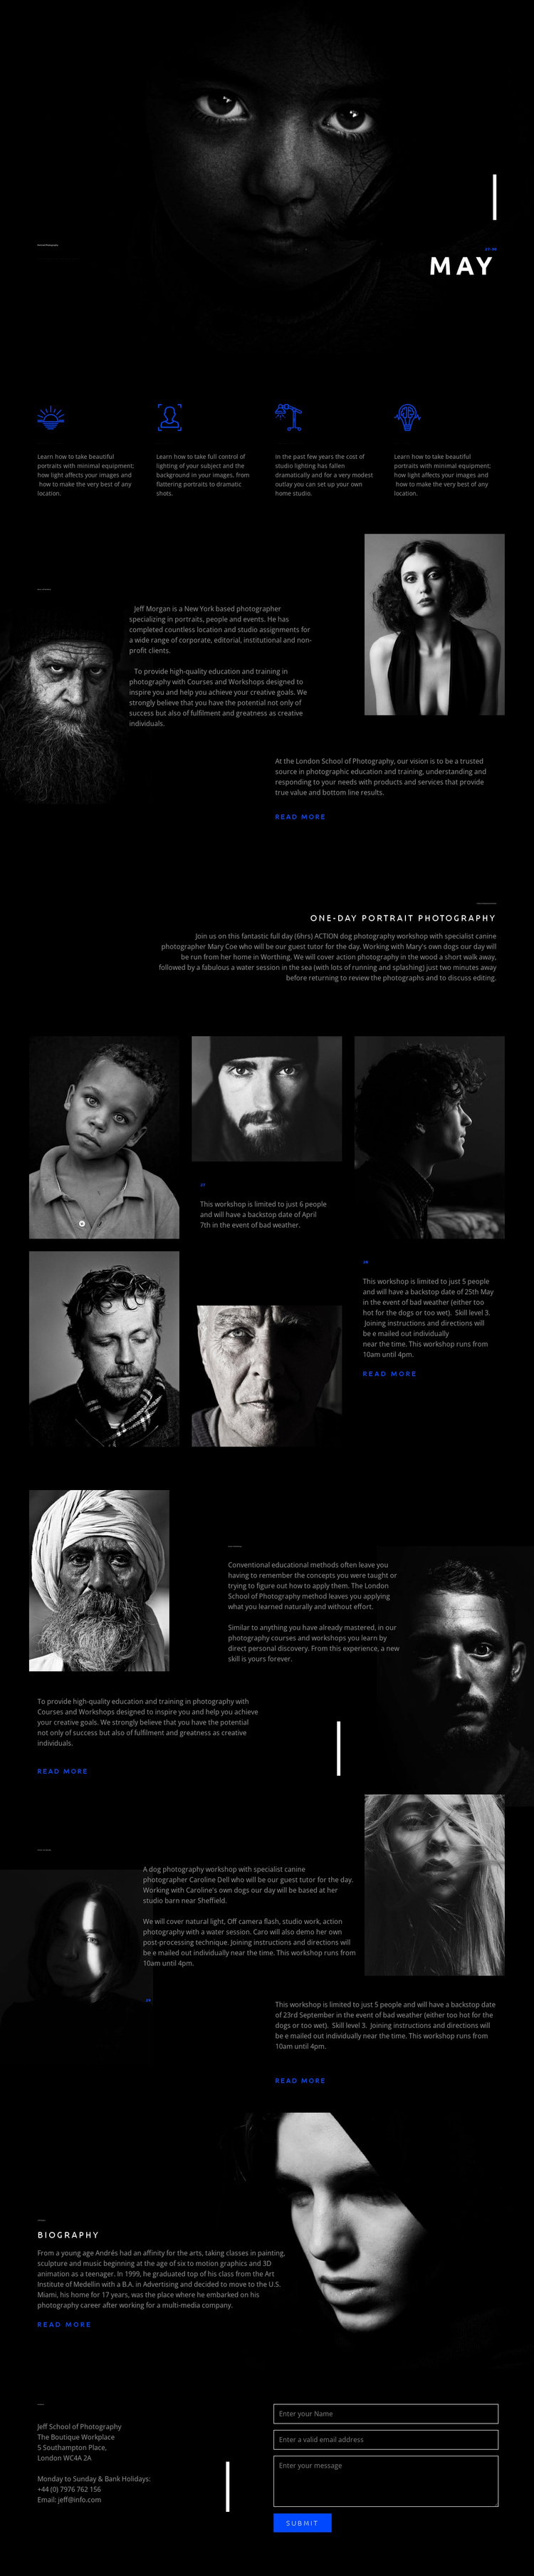 Amazing portrait art Landing Page